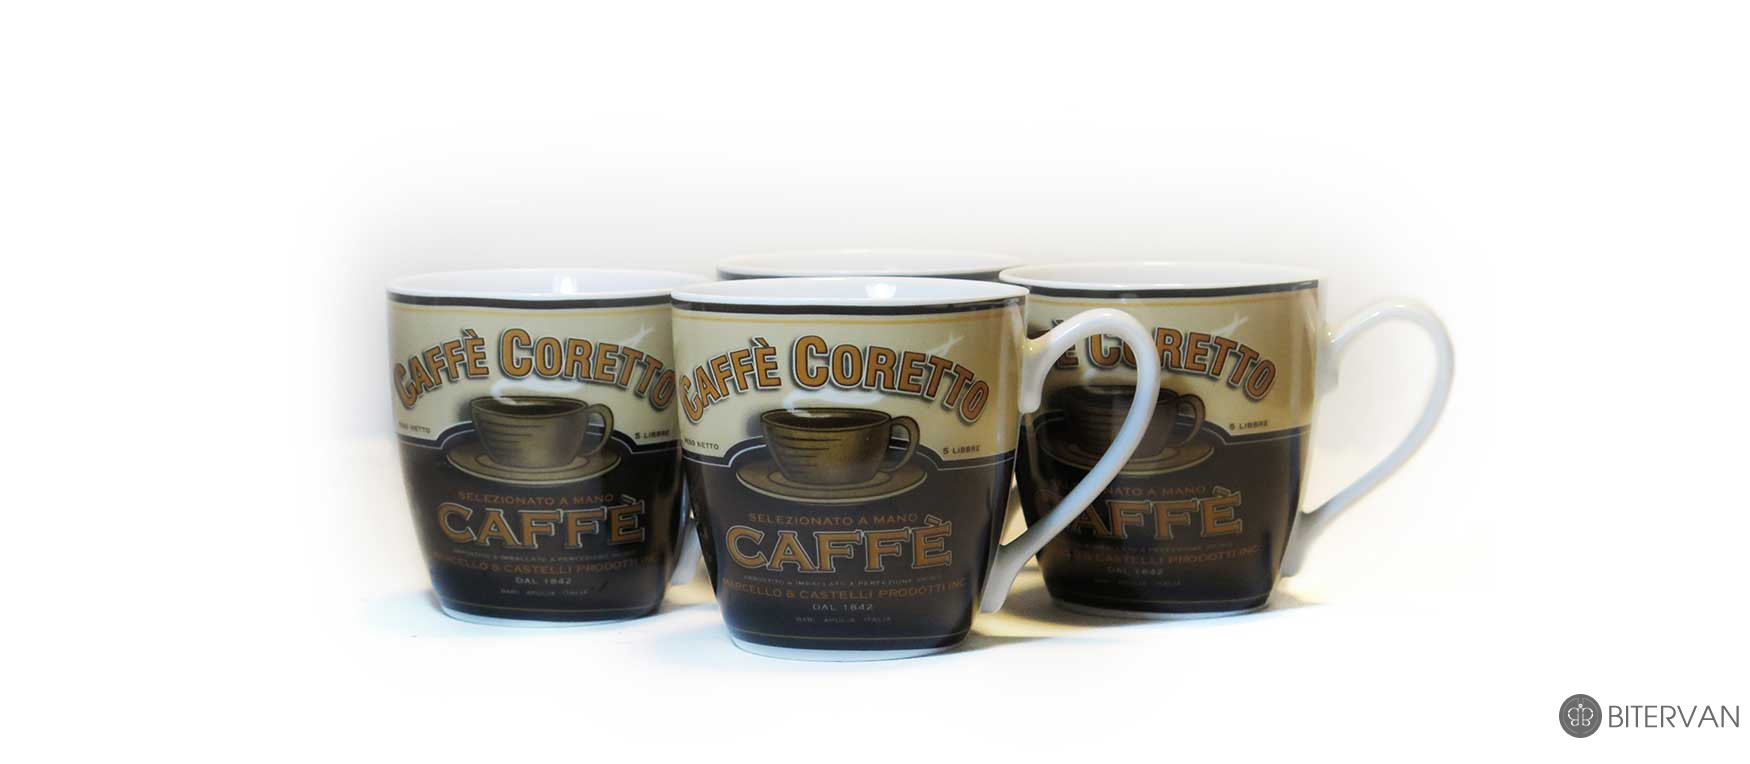 Thinkkitchen Family- STOKES CAFE CORETTO-S/4 MUGS